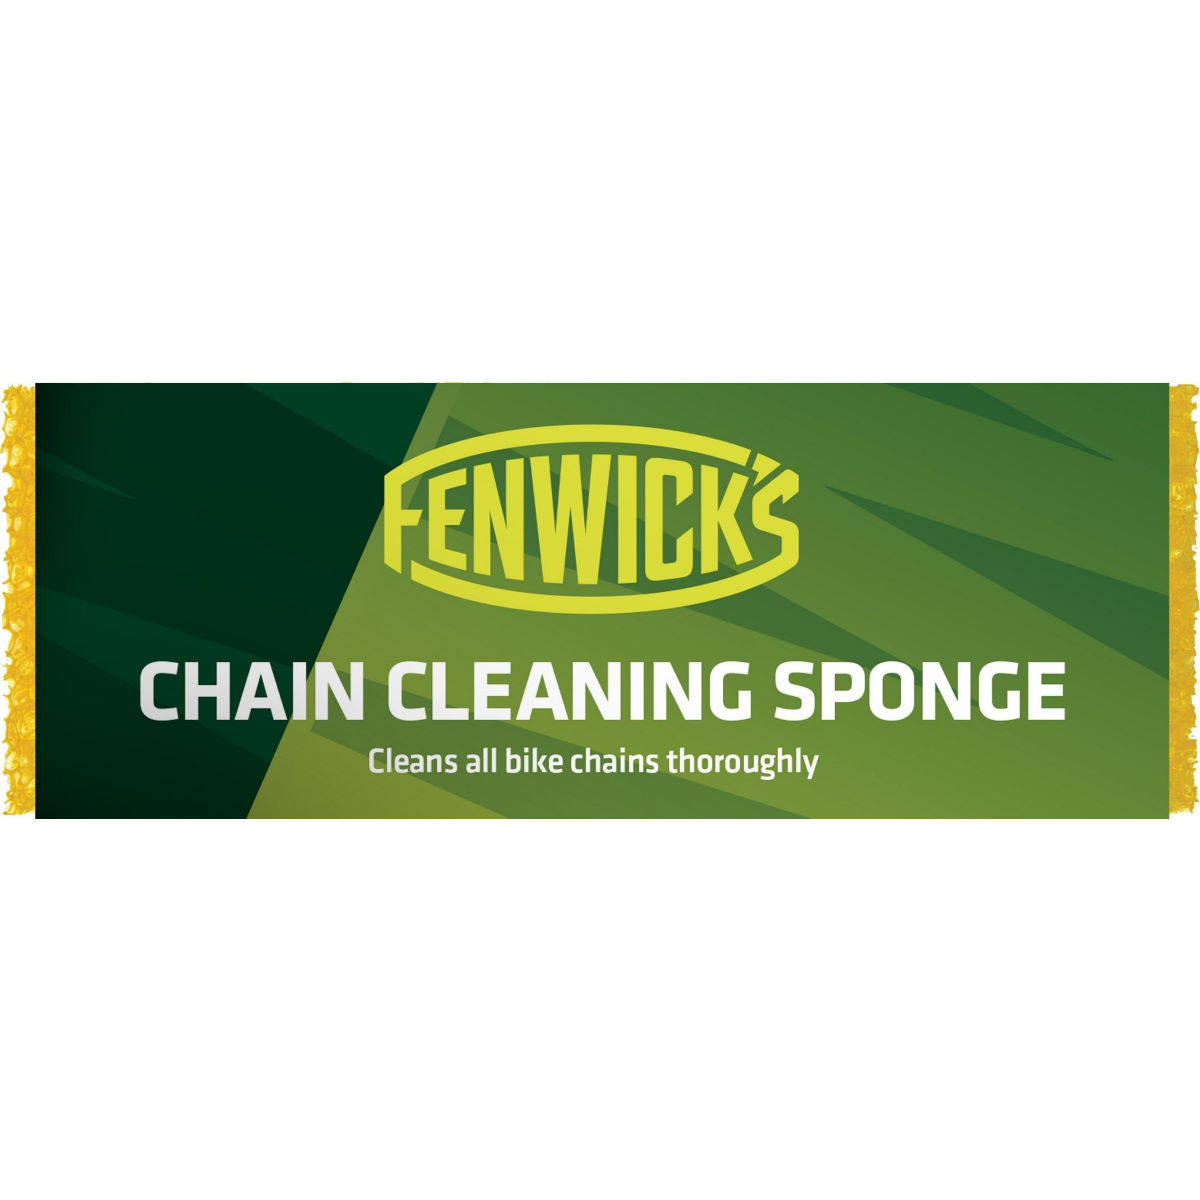 Fenwicks Chain Cleaning Sponge - Productos de limpieza